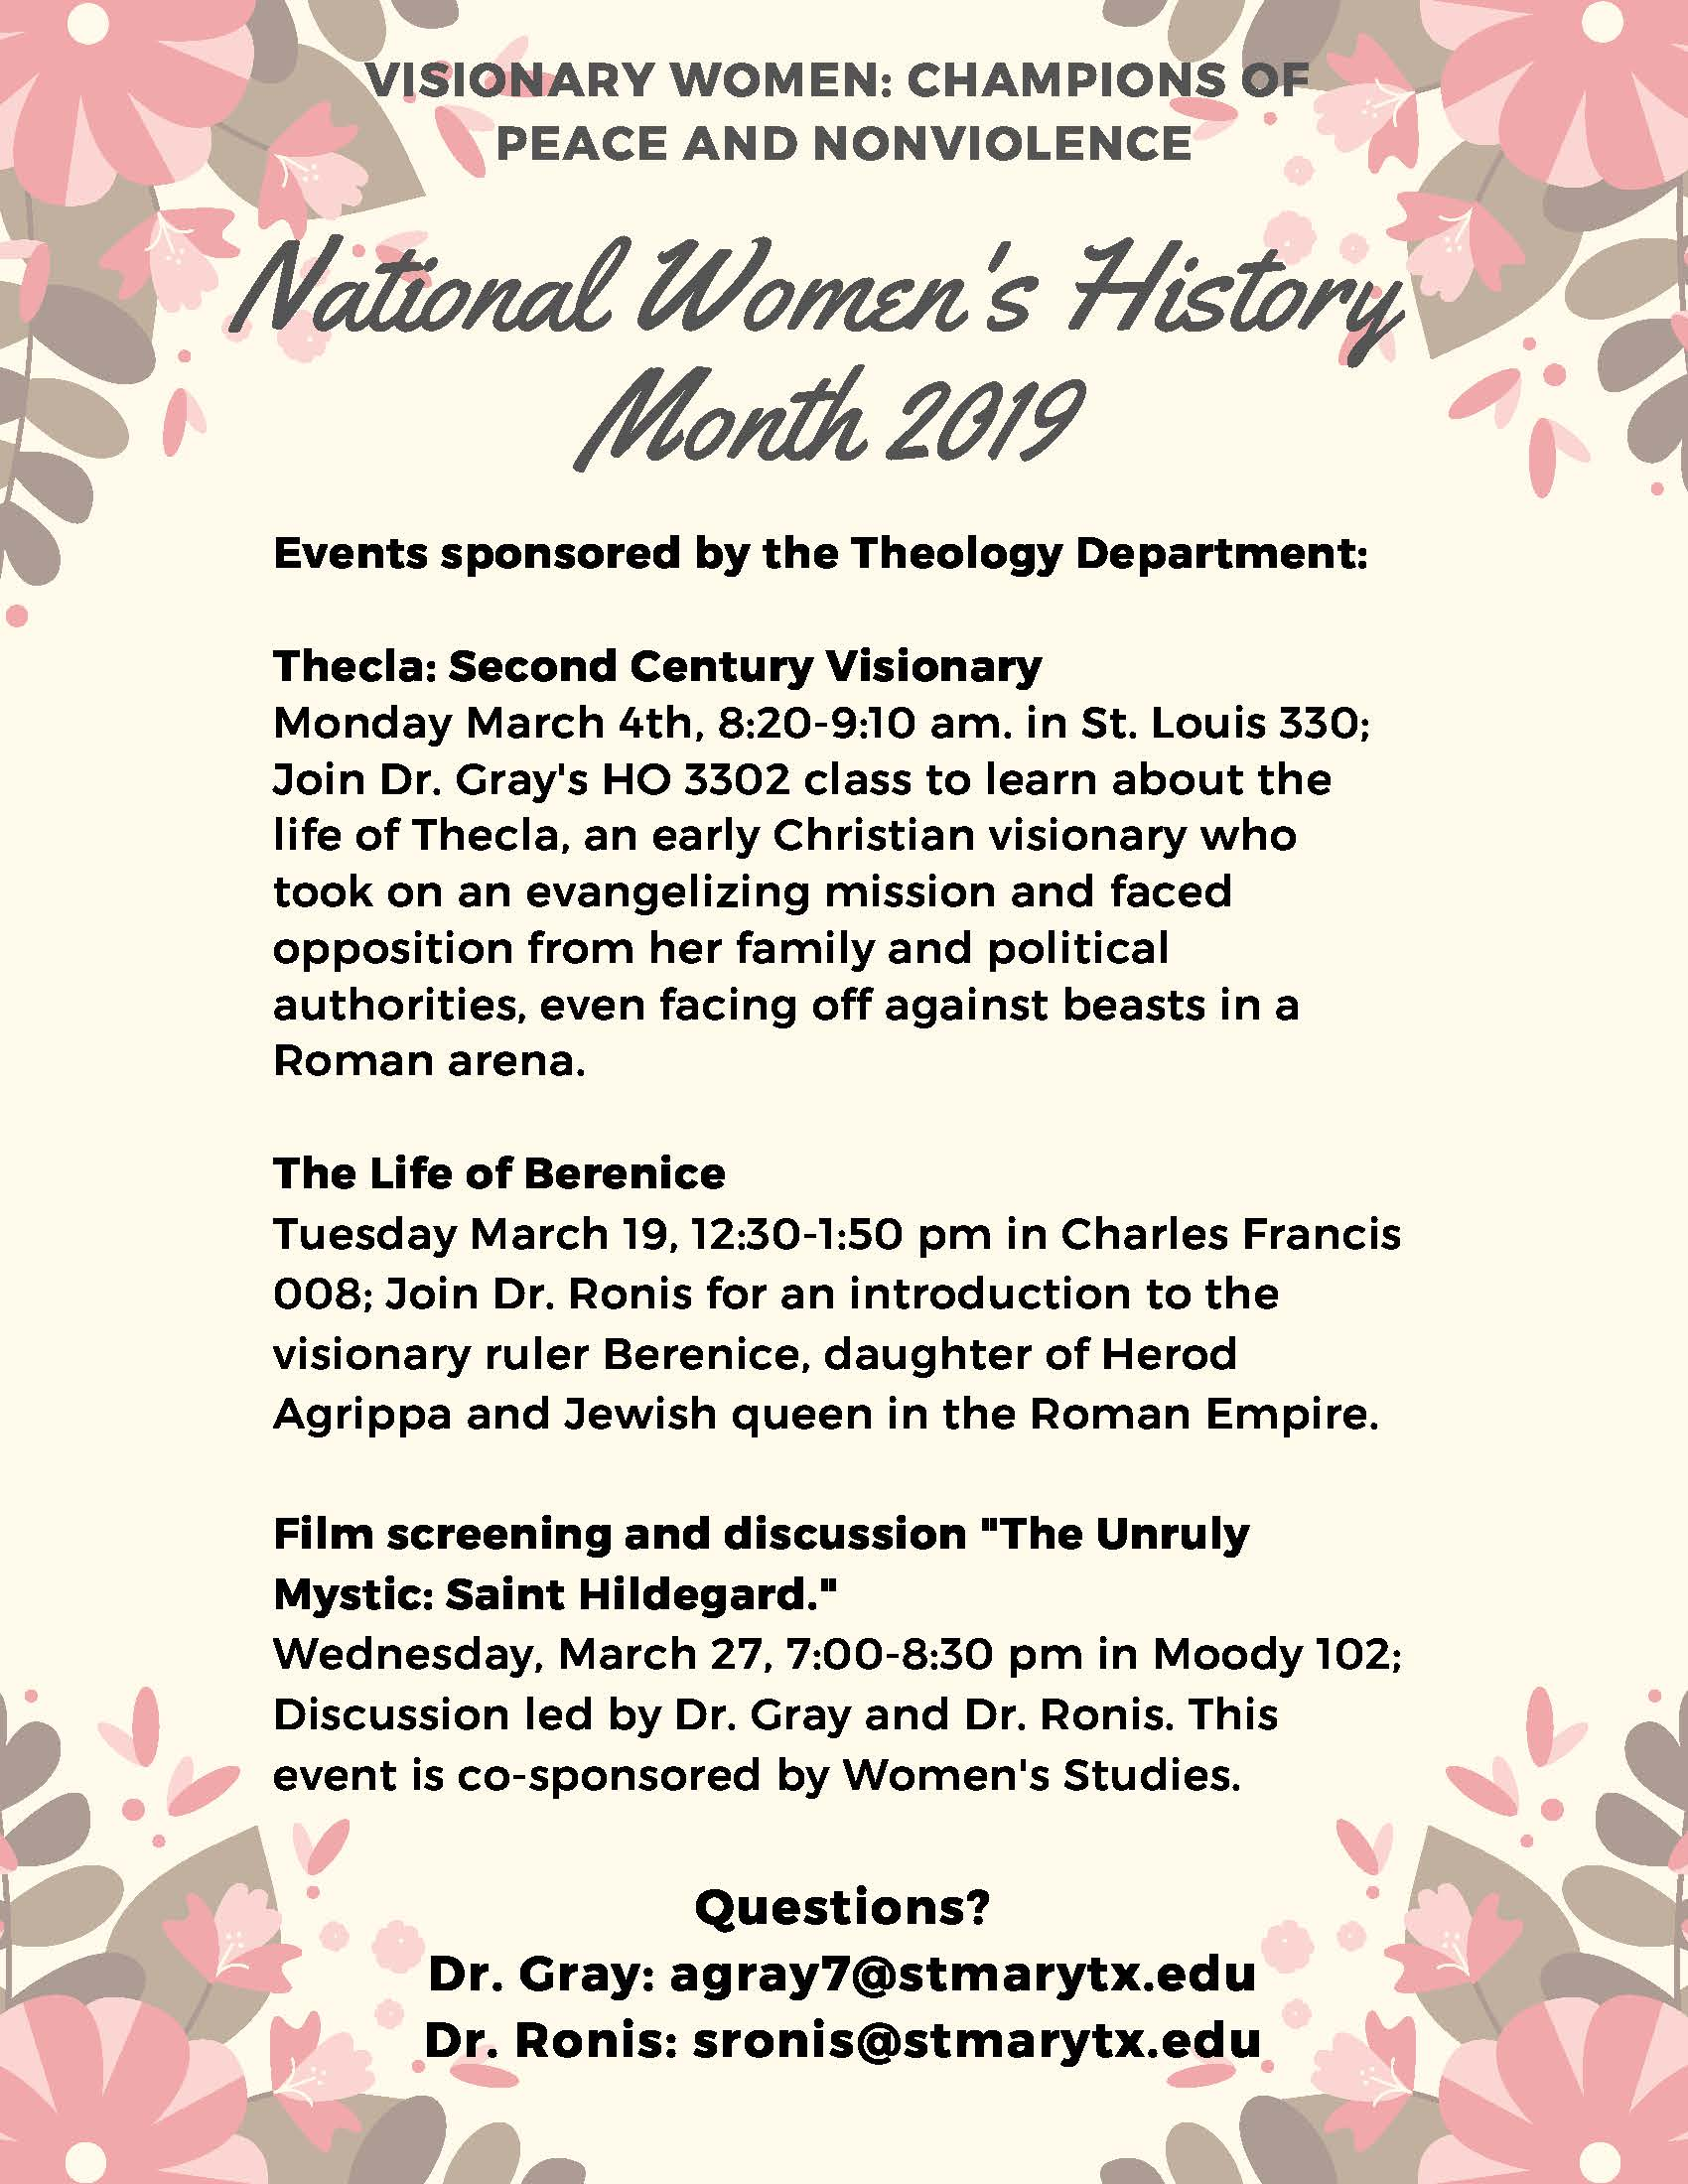 Theology Department sponsored 2019 National Women's History Month events